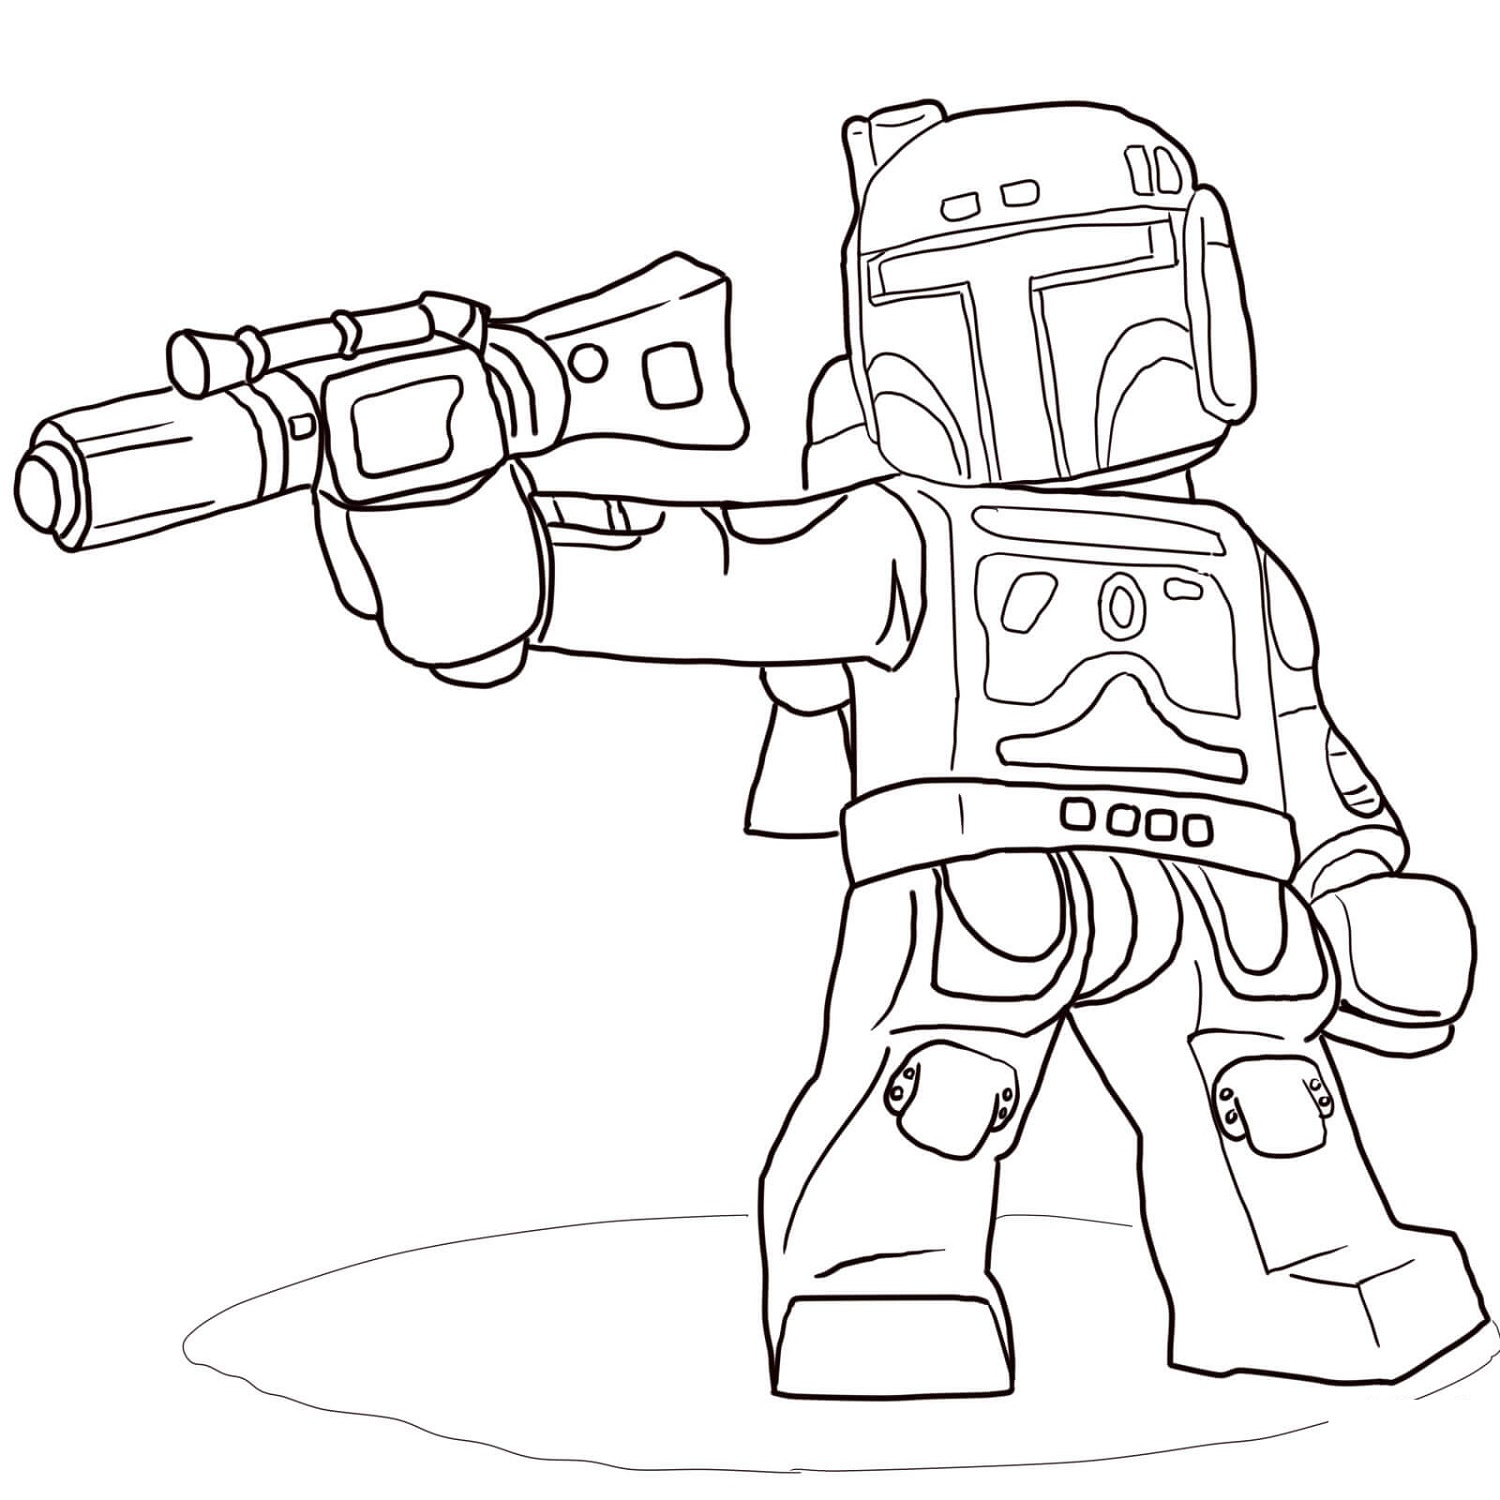 Lego Star Wars Coloring Pages Boba Fett